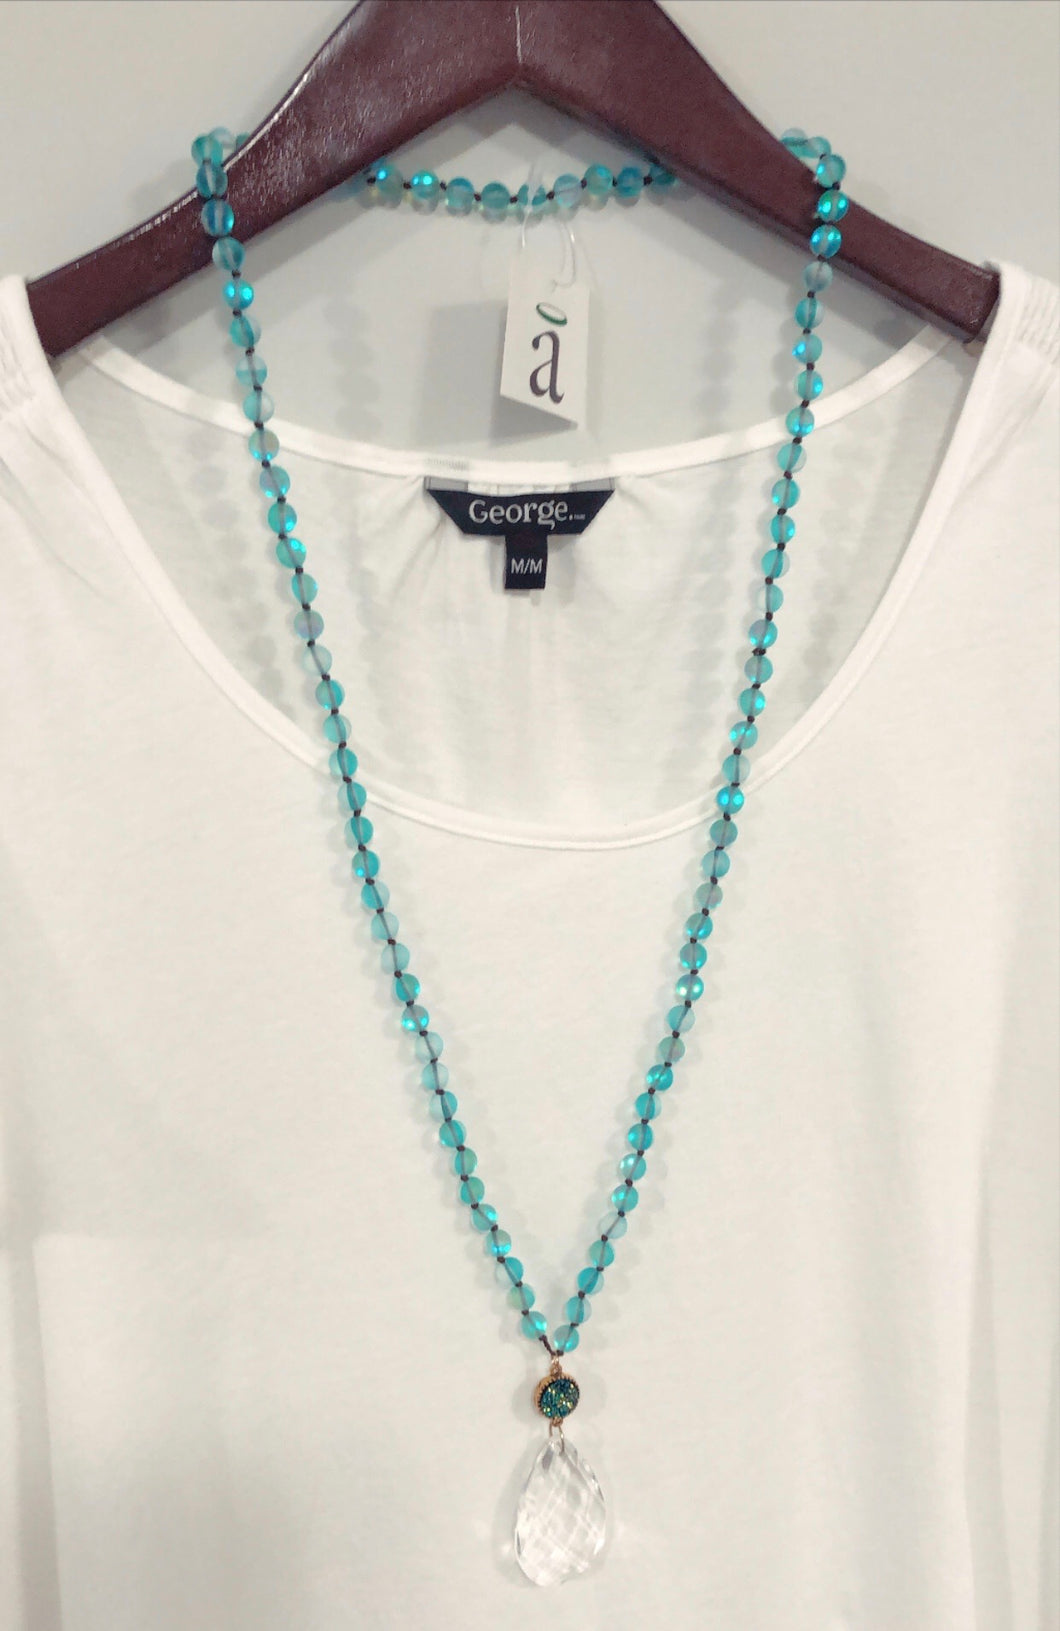 Teal glass necklace